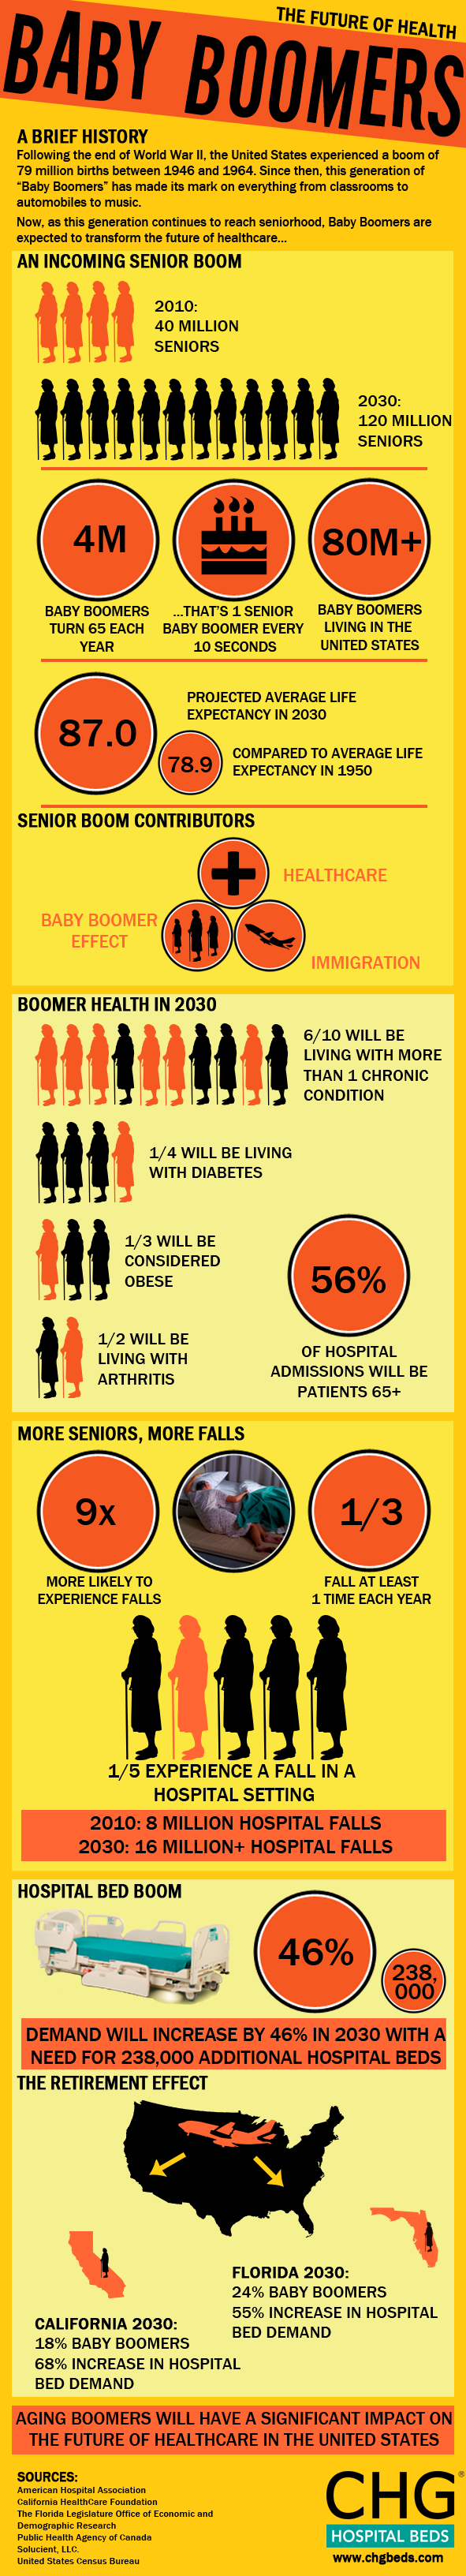 The next generation of senior citizens is posed to live longer and be larger than any previous generation.